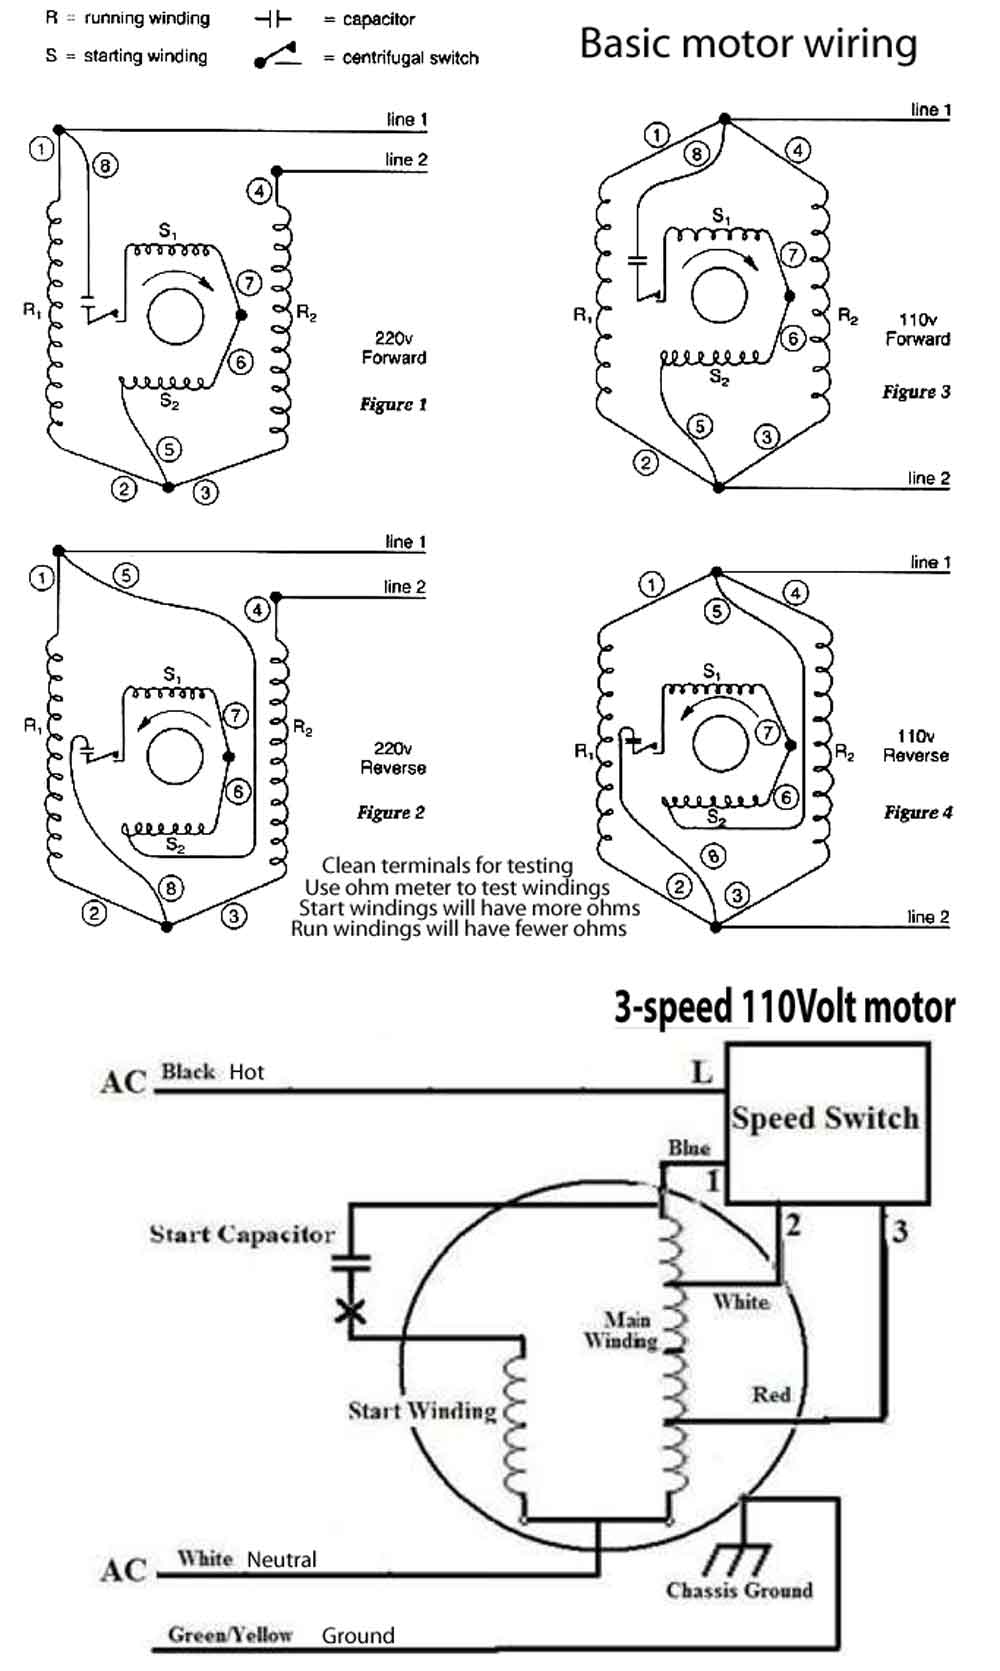 Baldor Motors Wiring Diagram 3 Phase from i0.wp.com